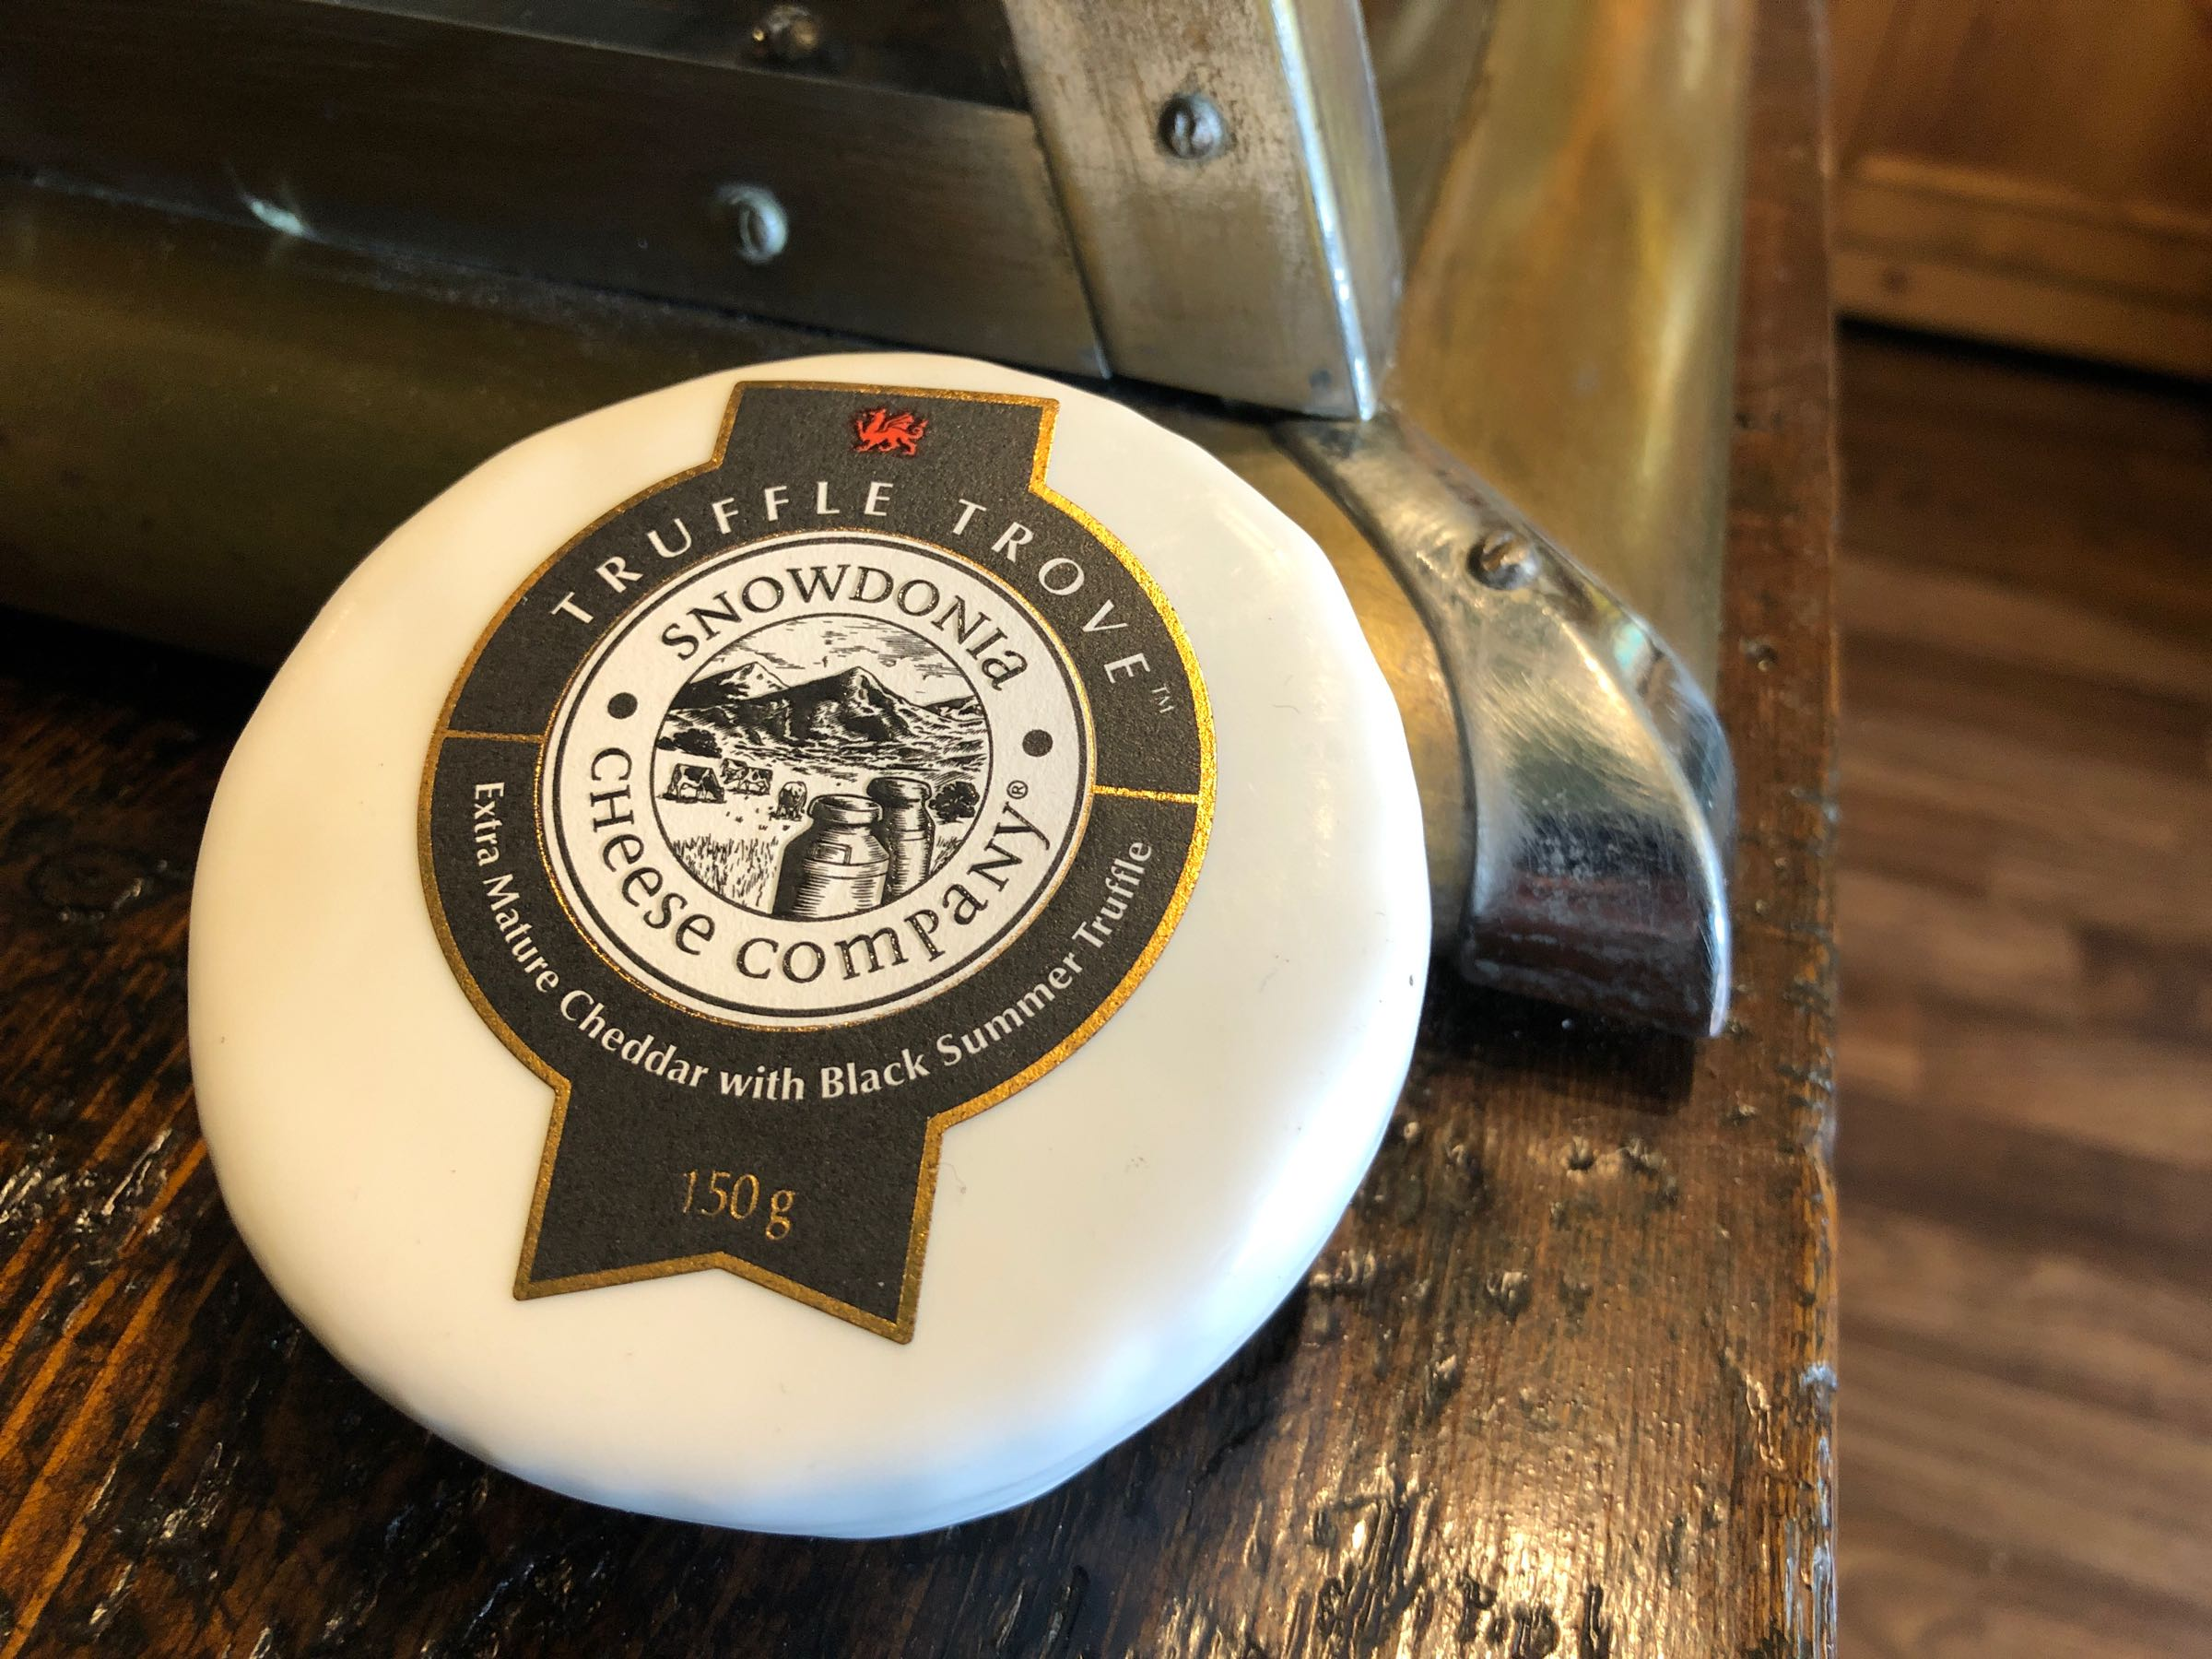 Snowdonia Cheese Co. Truffle Trove 150g